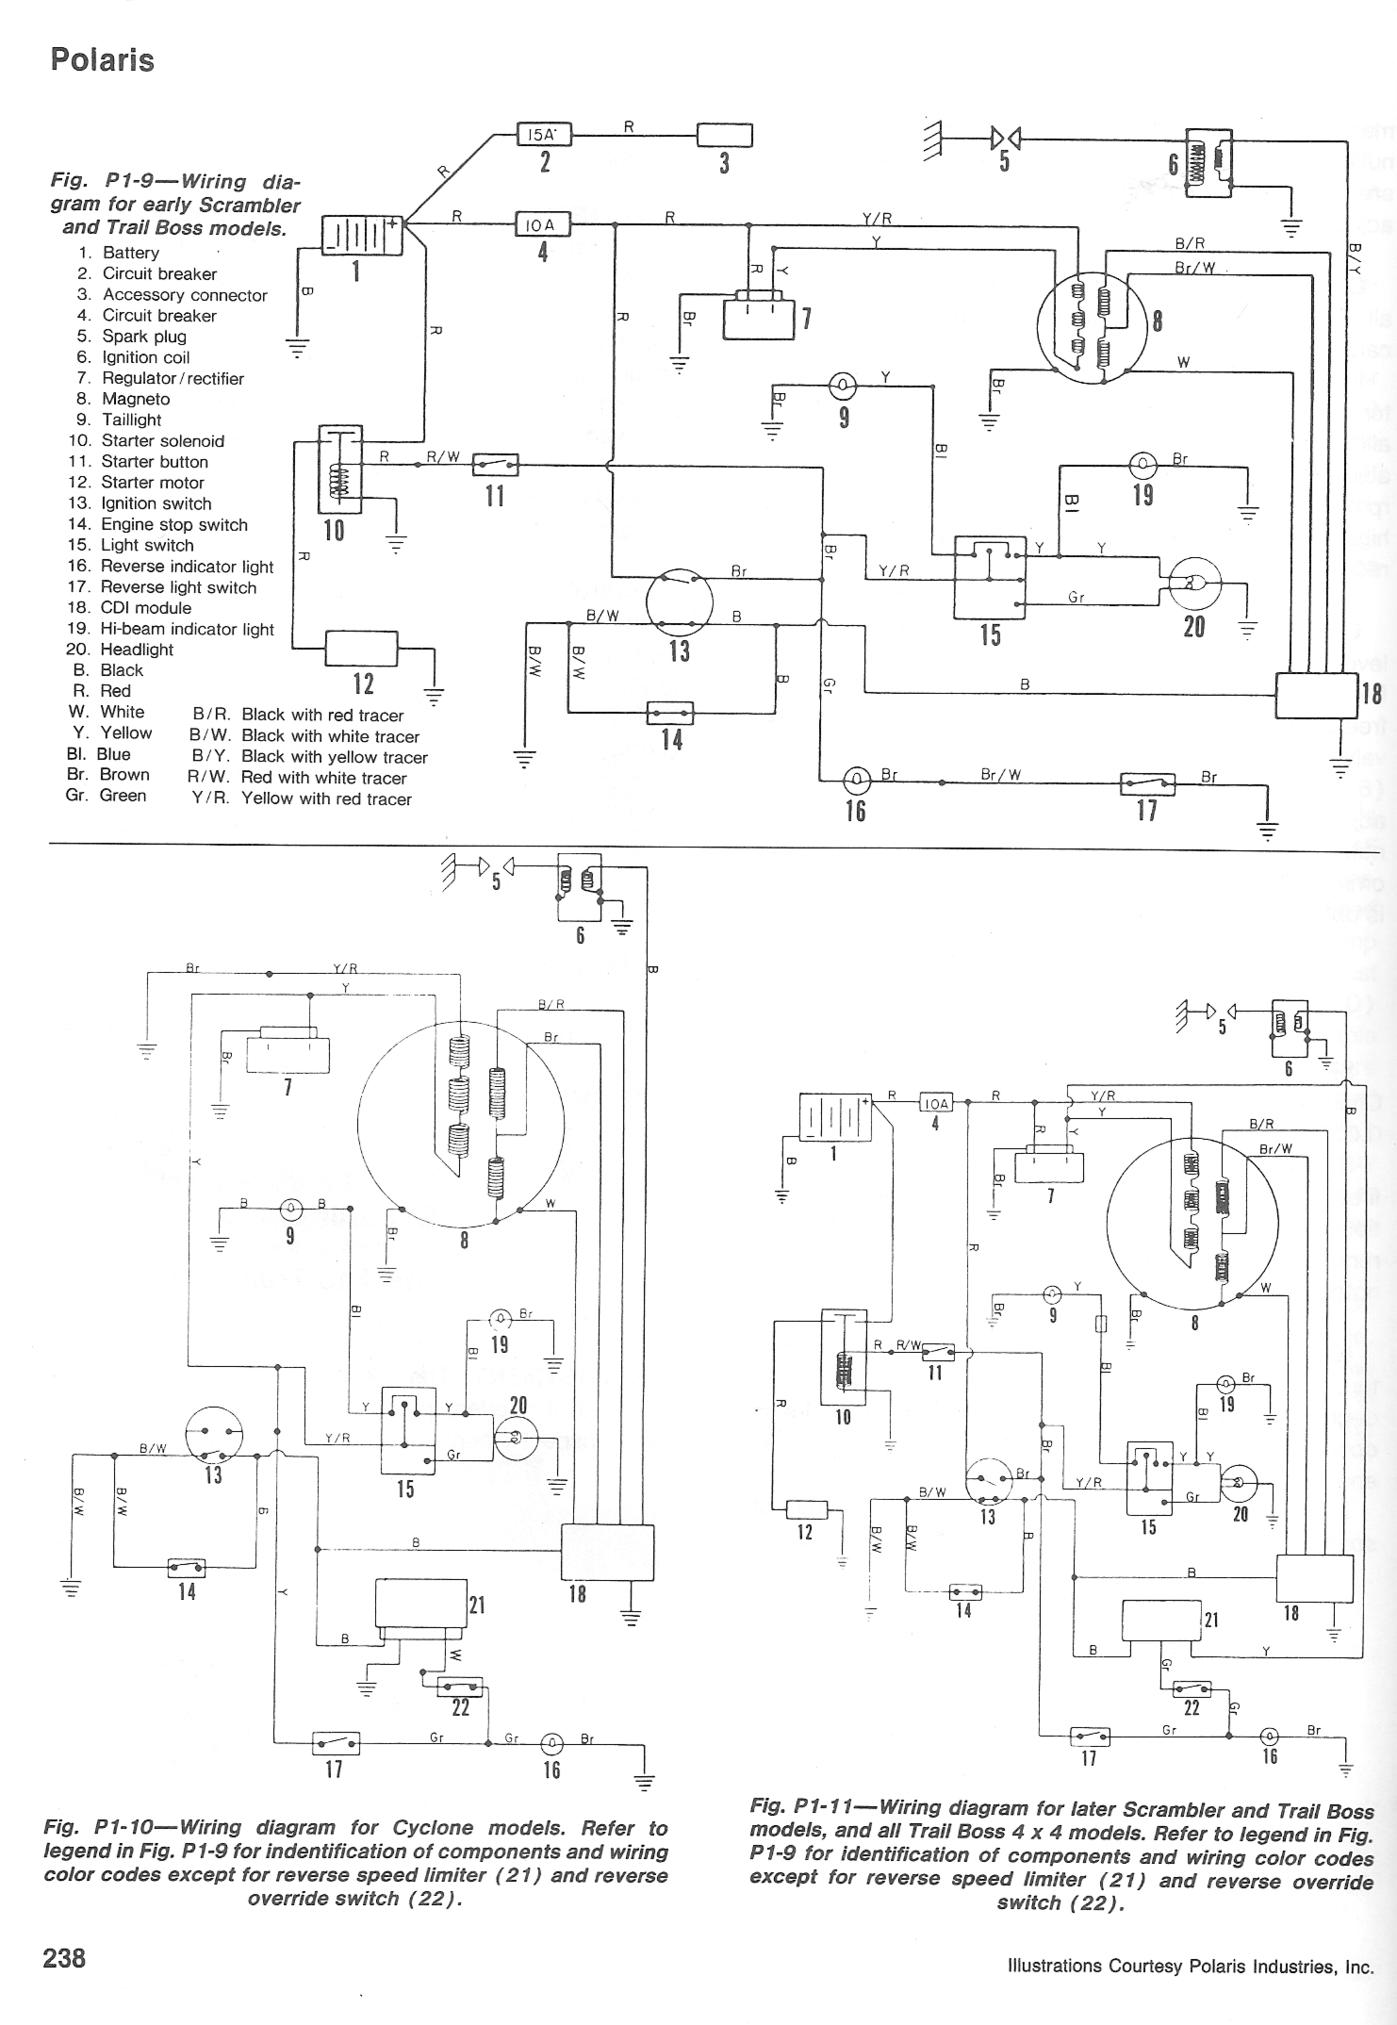 wiring diagram polaris xplorer 300 the wiring diagram 2001 polaris sportsman 90 wiring diagram nodasystech wiring diagram